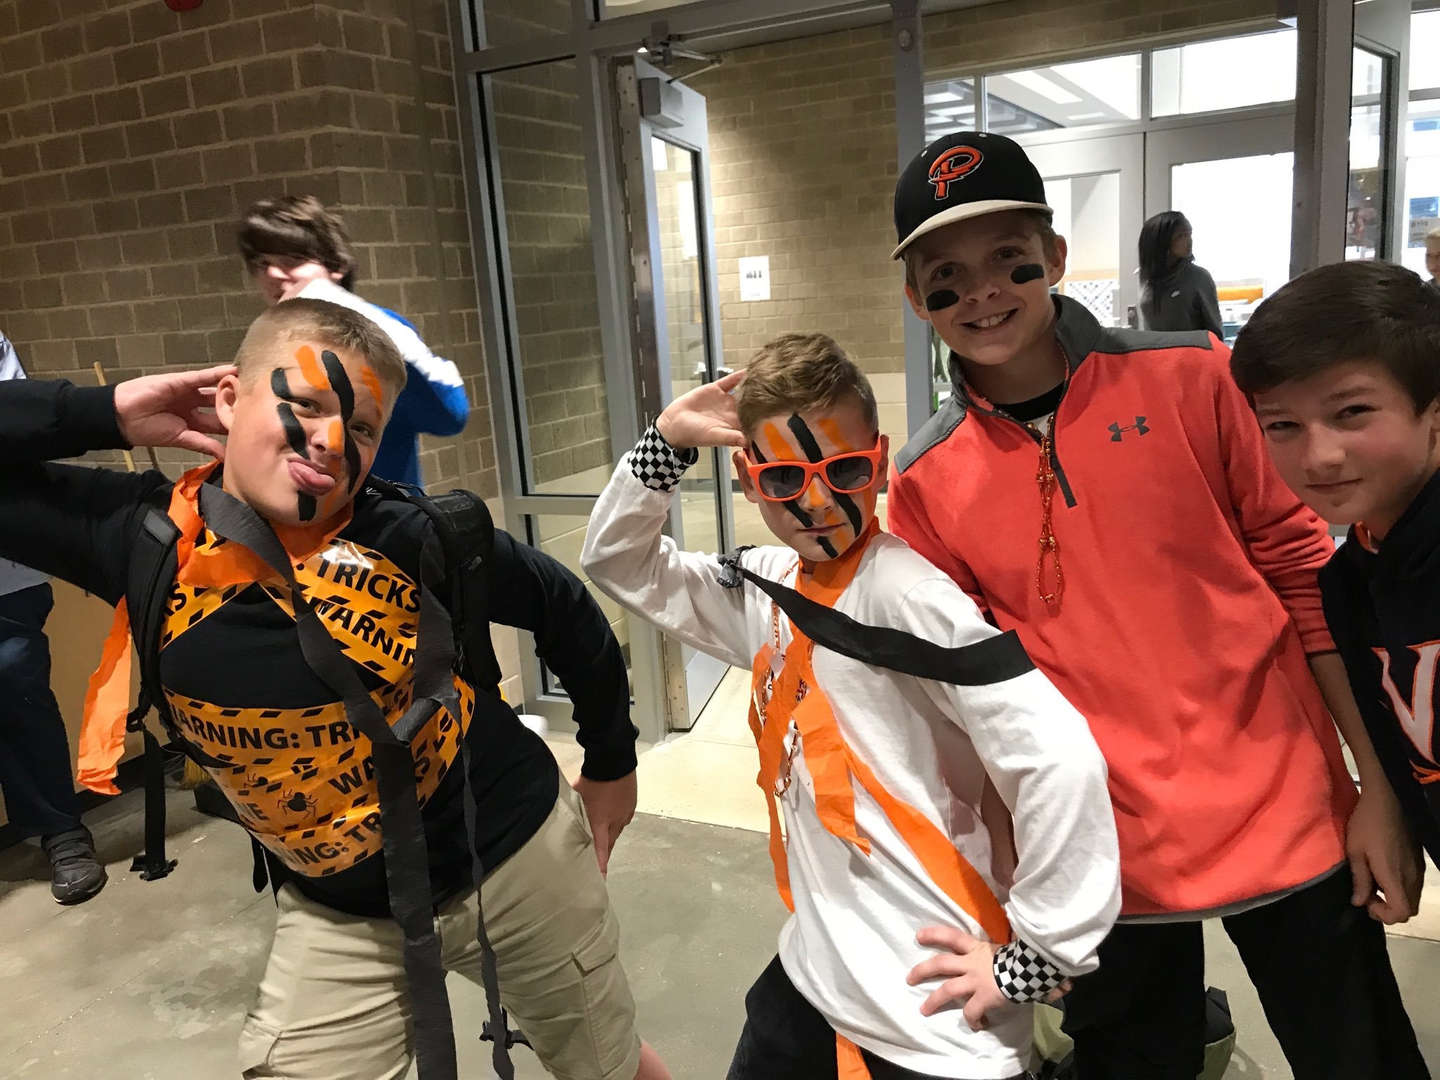 students wearing spirit costumes